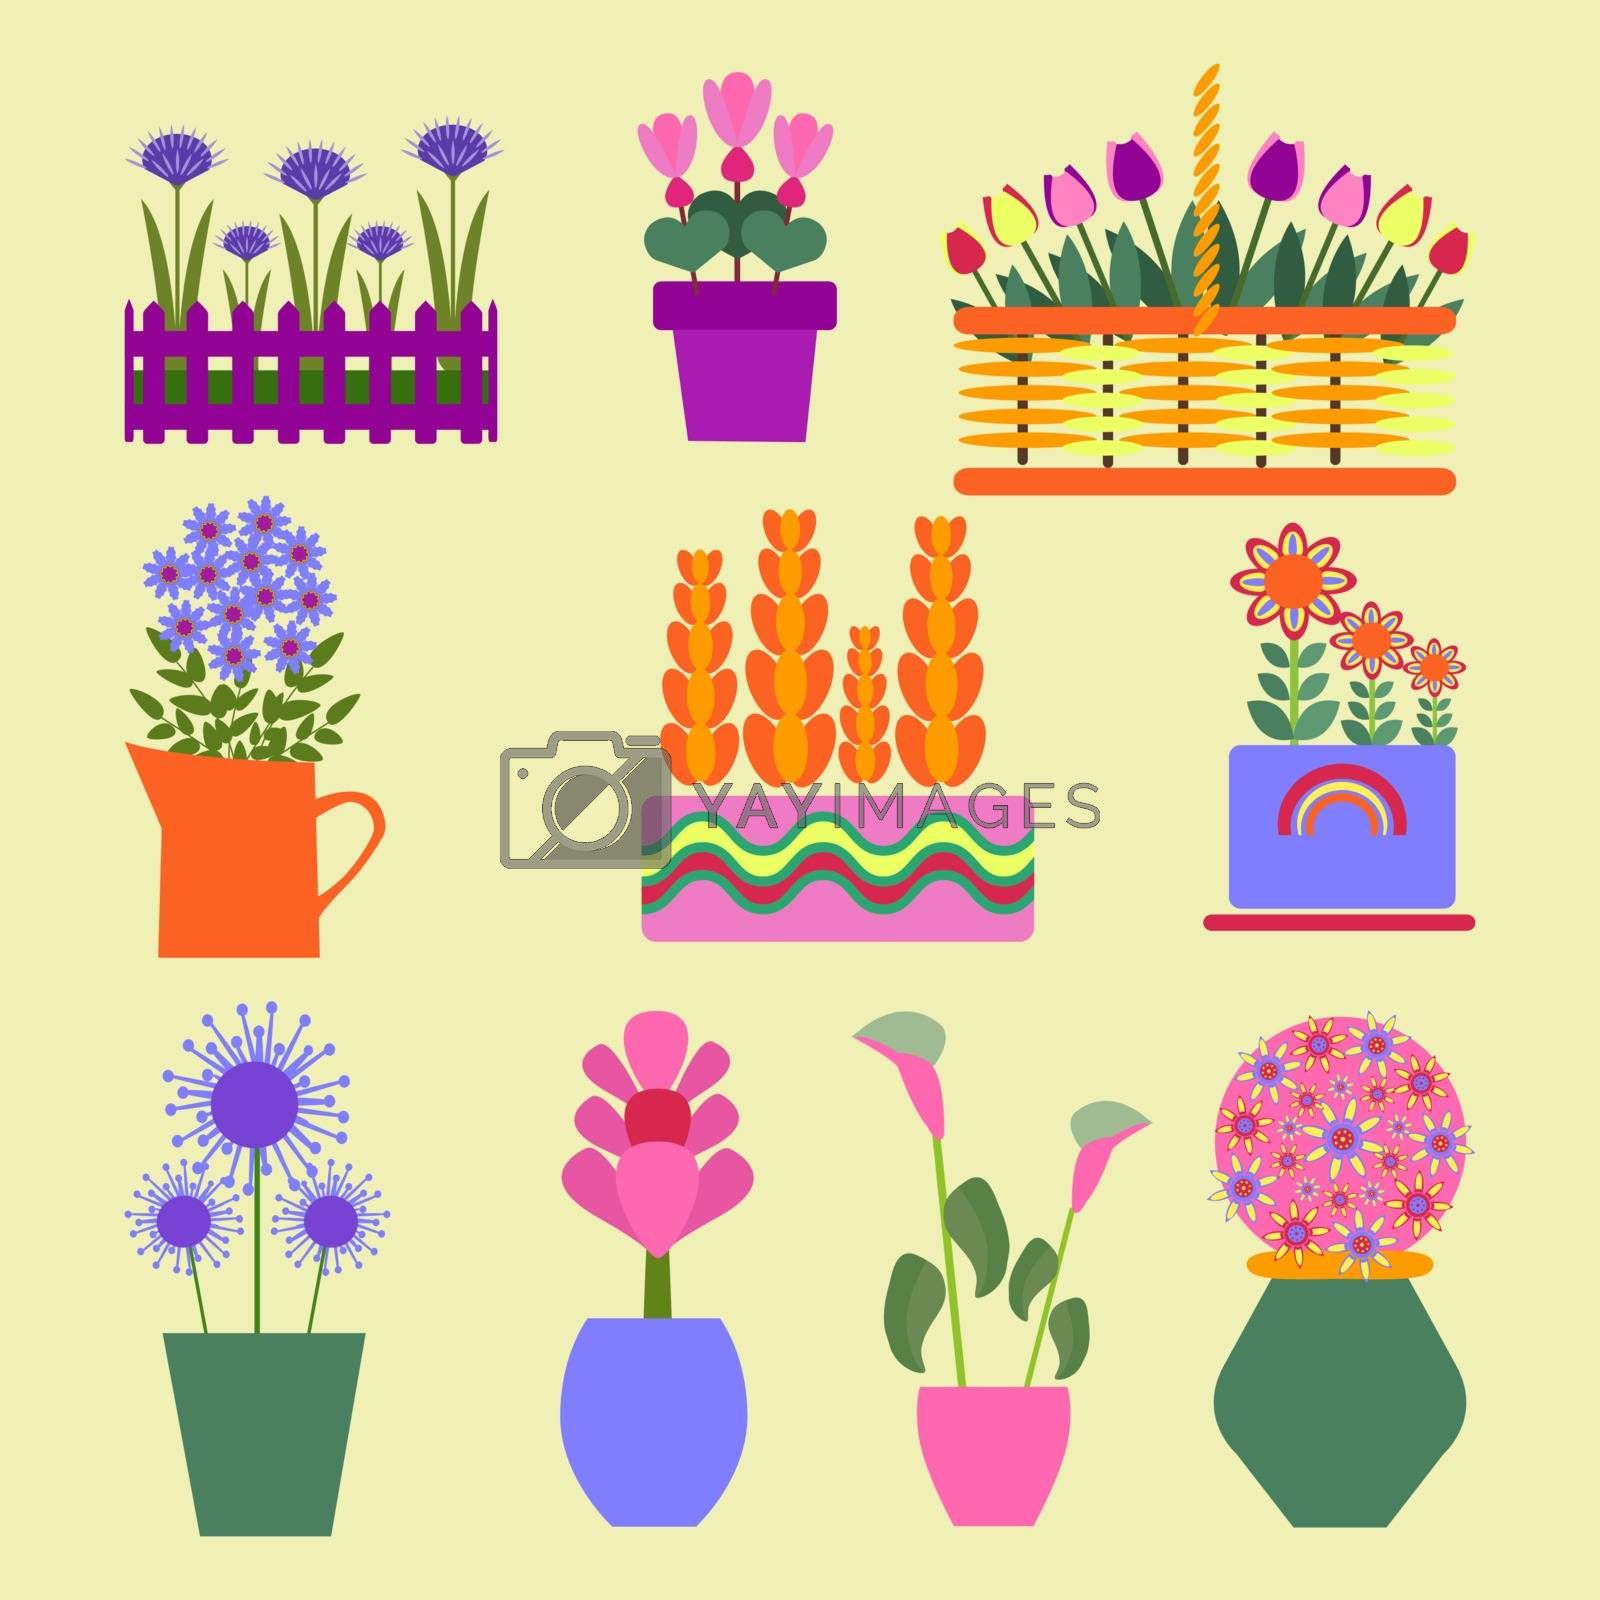 Flower shop. Garden plants spring and summer.  Vector flat illustrations, set icons for design.